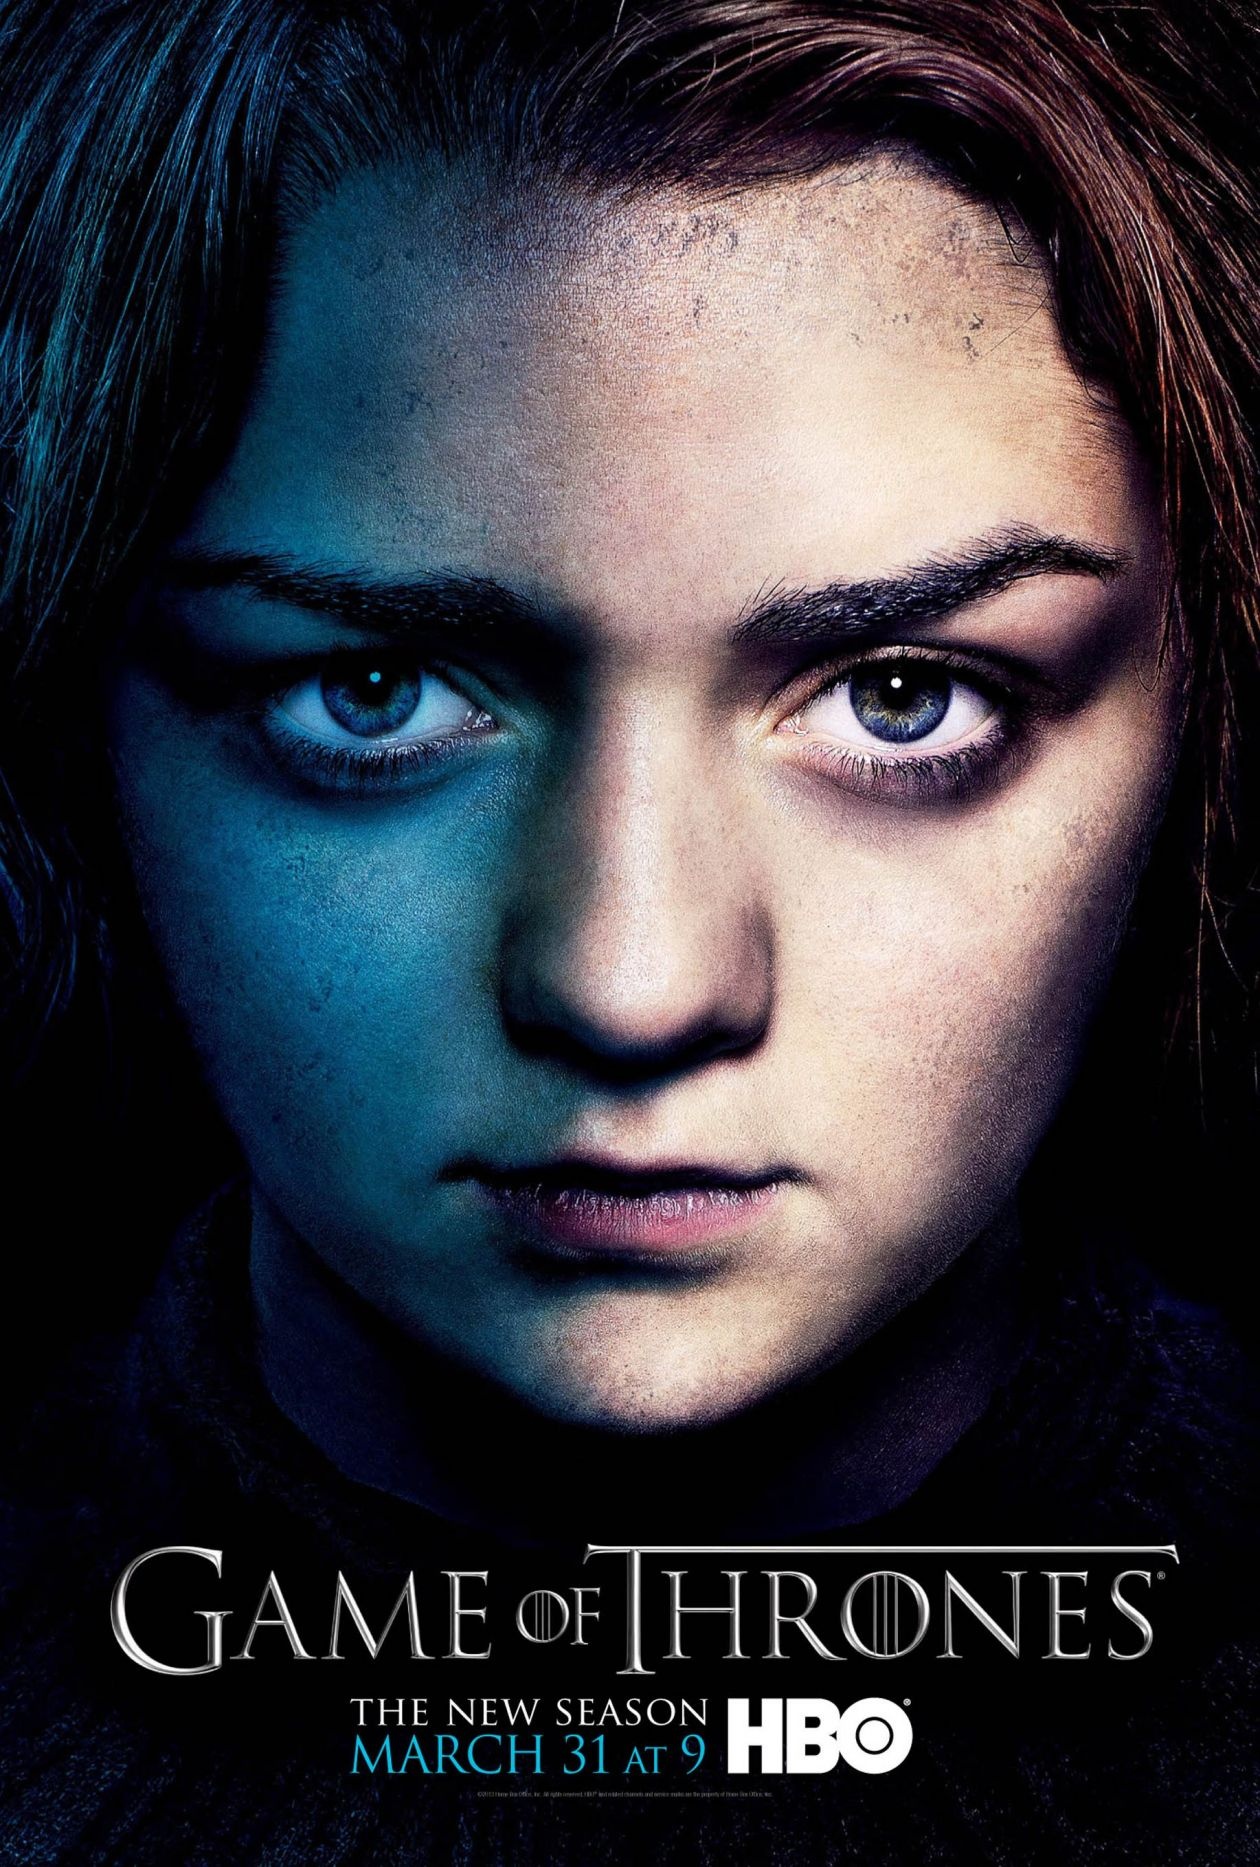 Maisie Williams actress : Arya Stark  Game of Thrones : Series Poster Season 3 2013